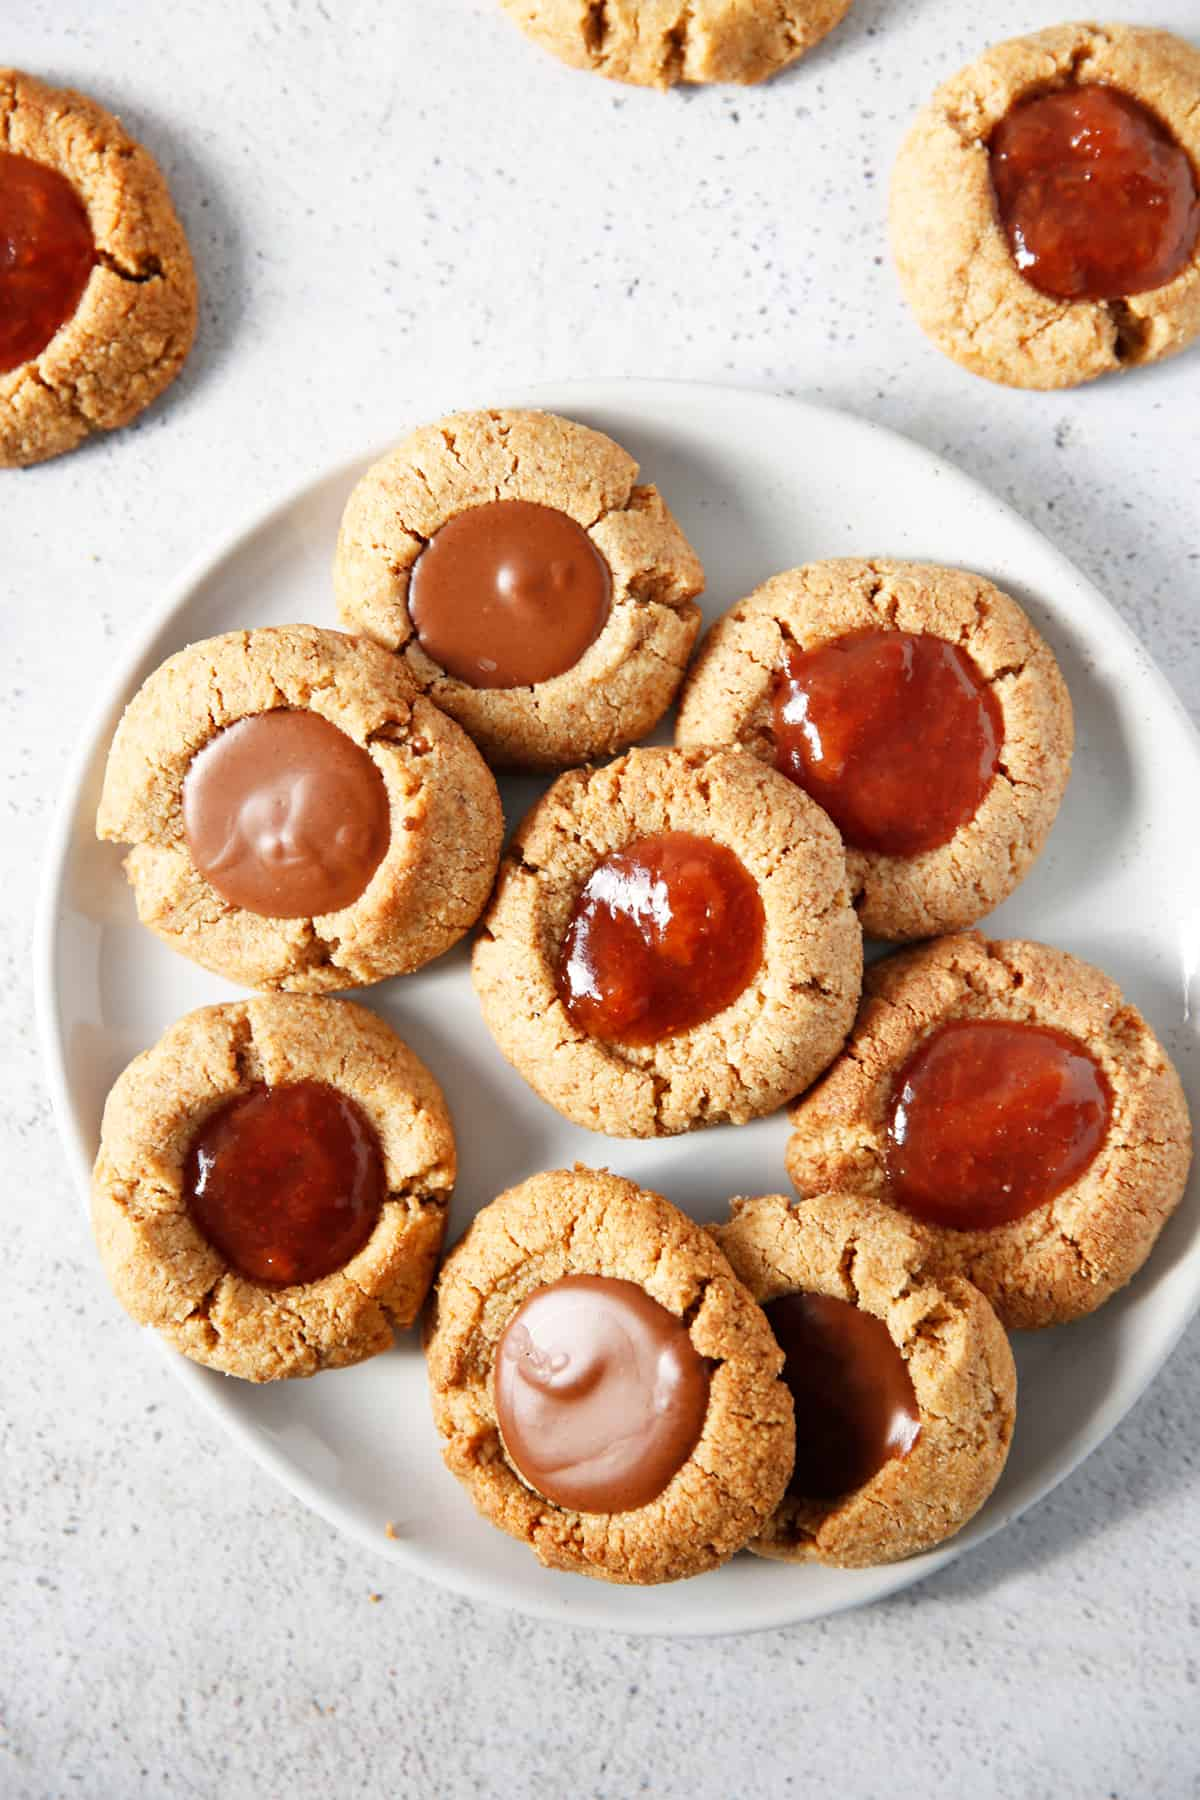 Gluten free thumbprint cookies on a plate.